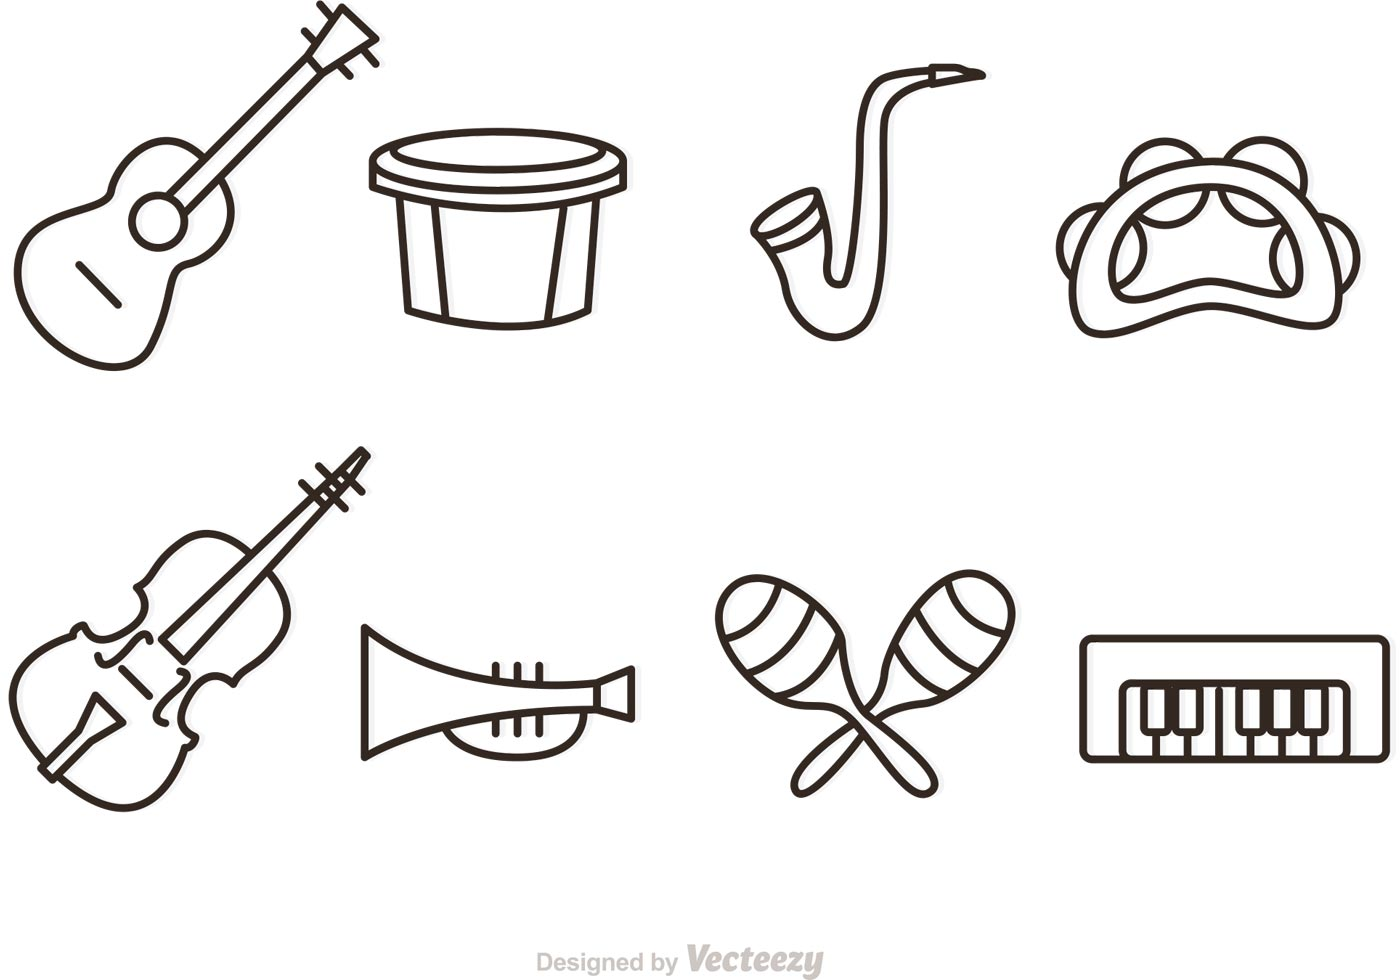 outline music instrument vector icons download free matching clipart matching clipart